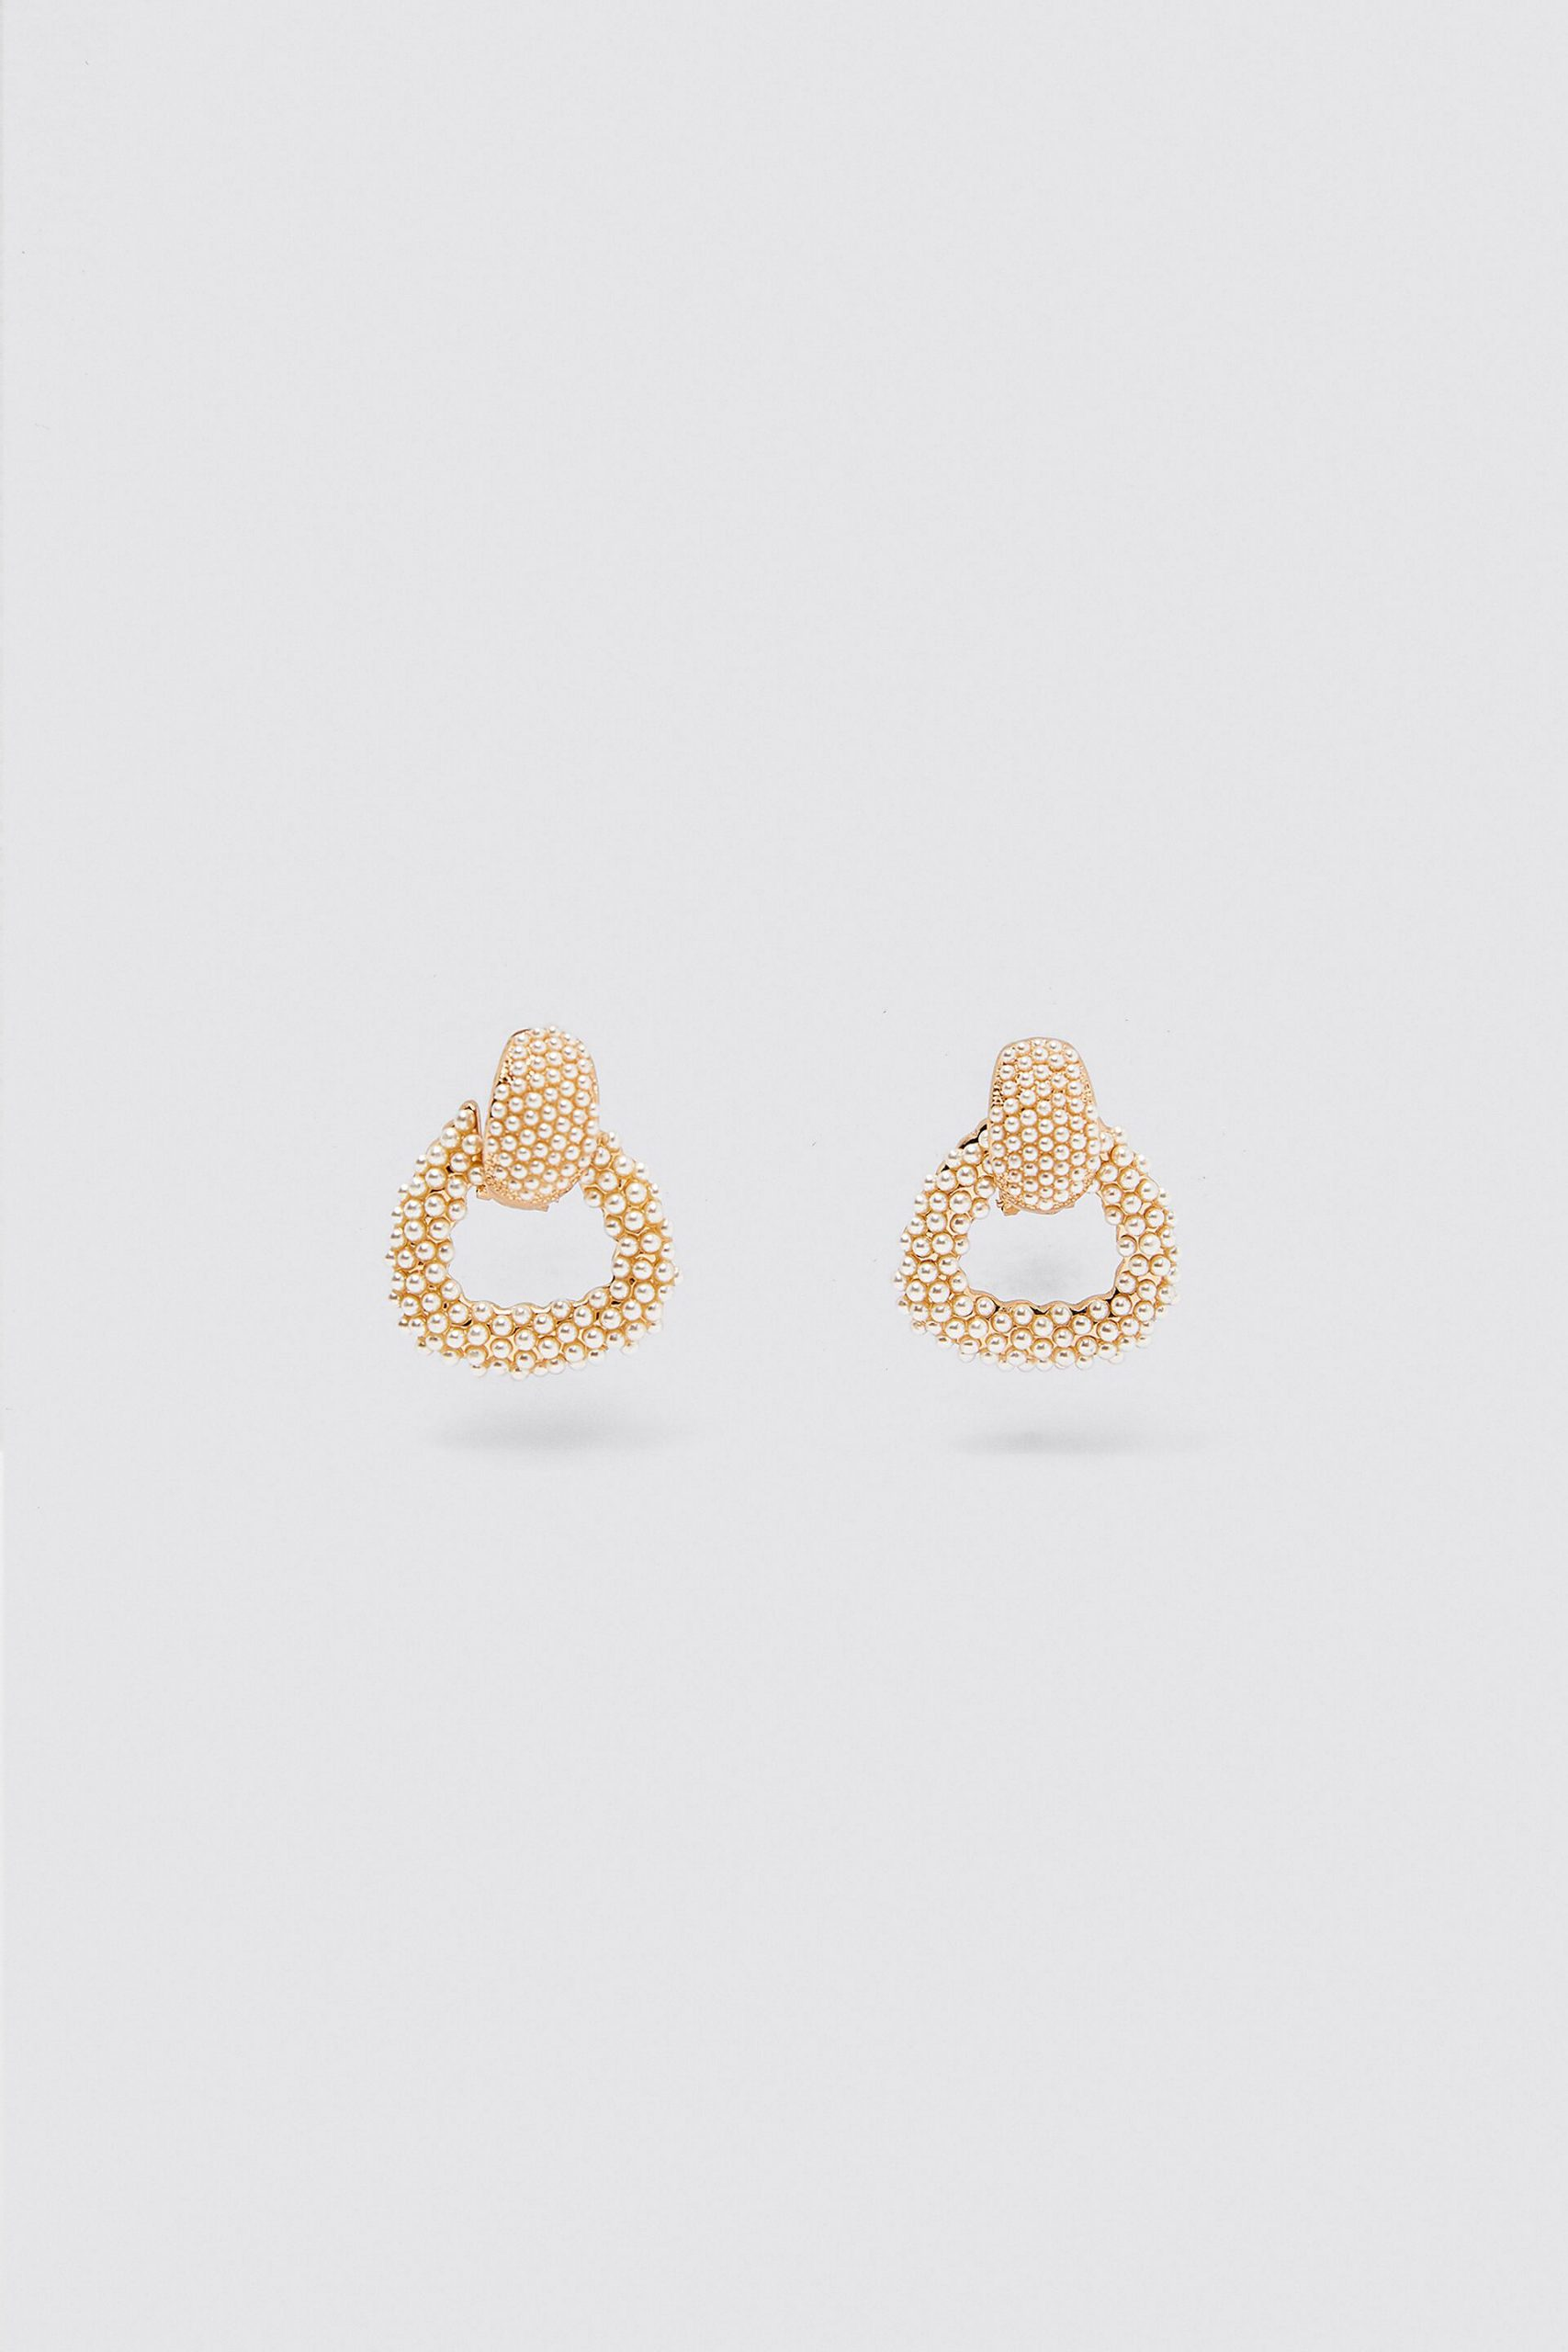 Small old hoop earrings with tiny pearls all over